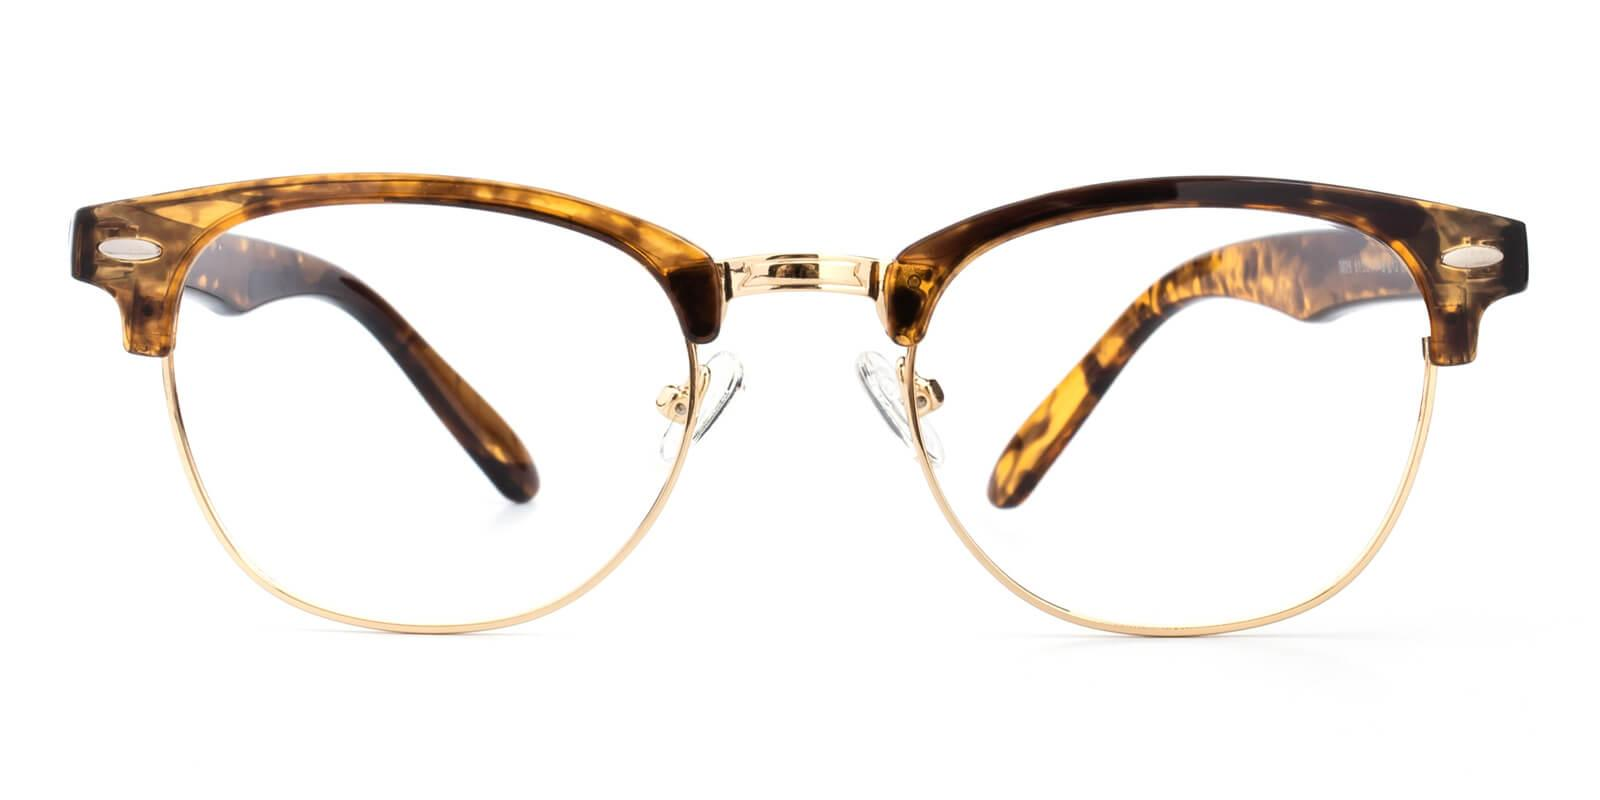 Ancient-Gold-Browline-Metal-Eyeglasses-detail